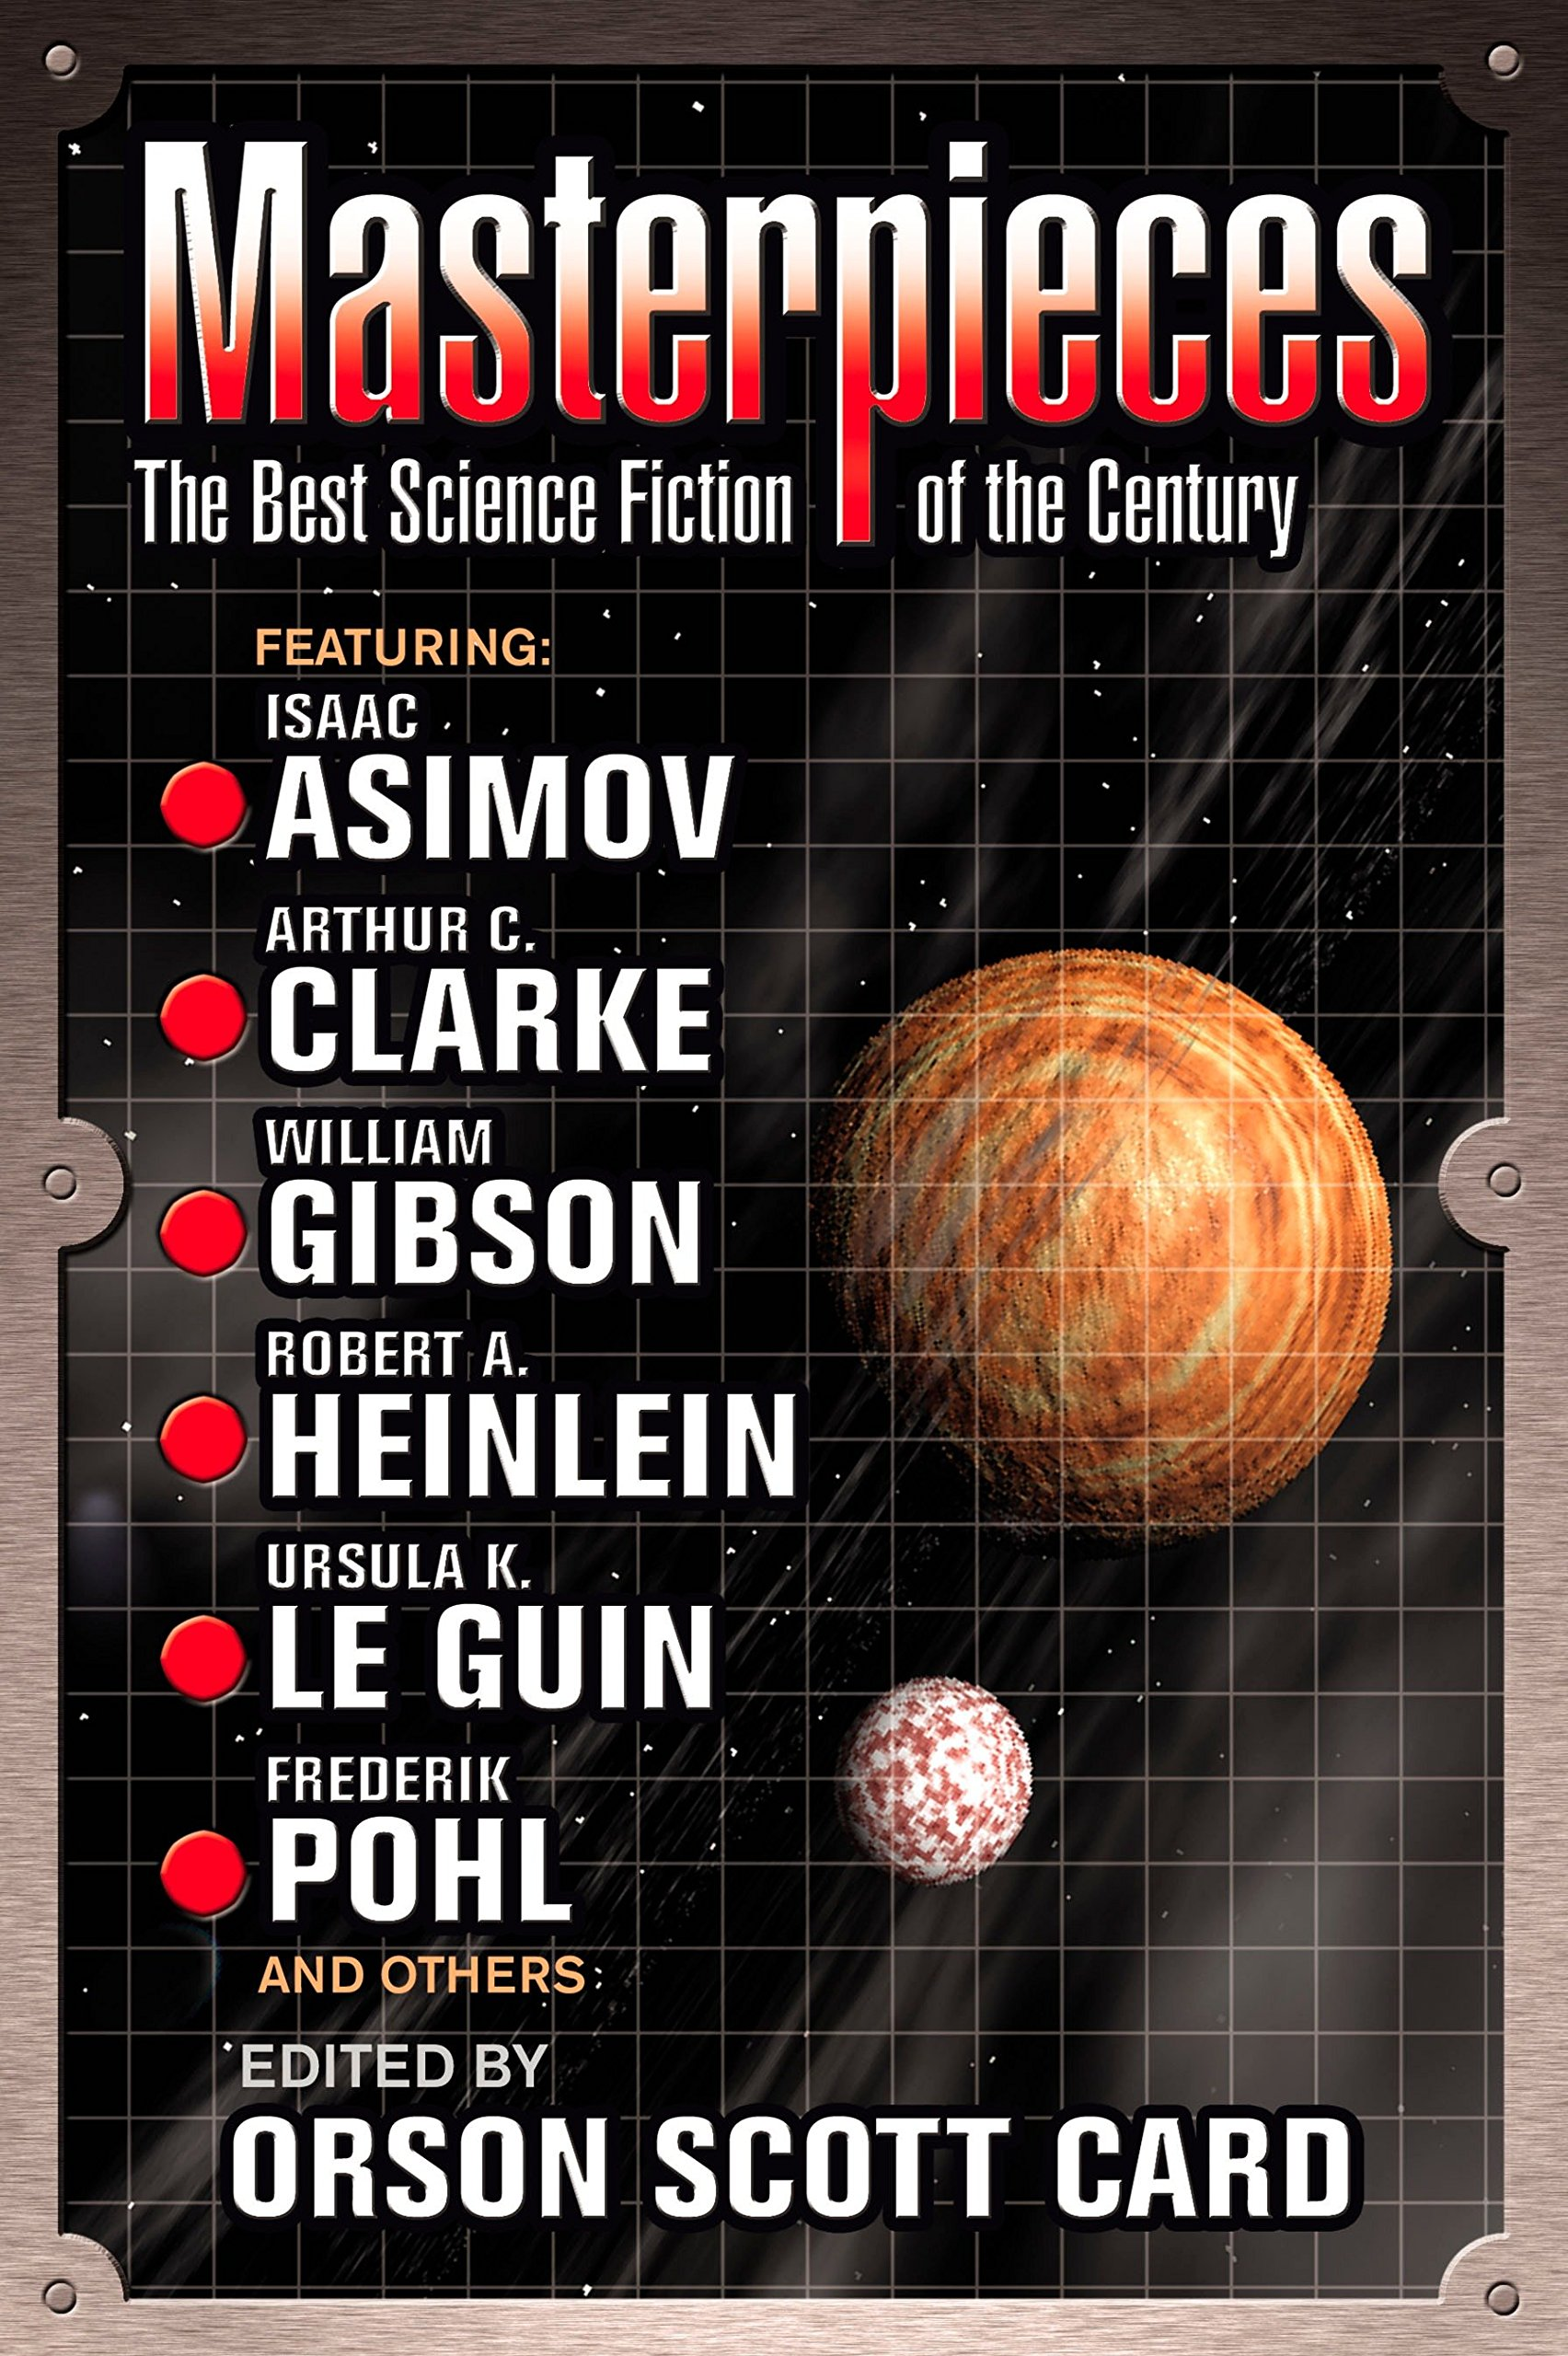 Masterpieces: The Best Science Fiction of the 20th Century